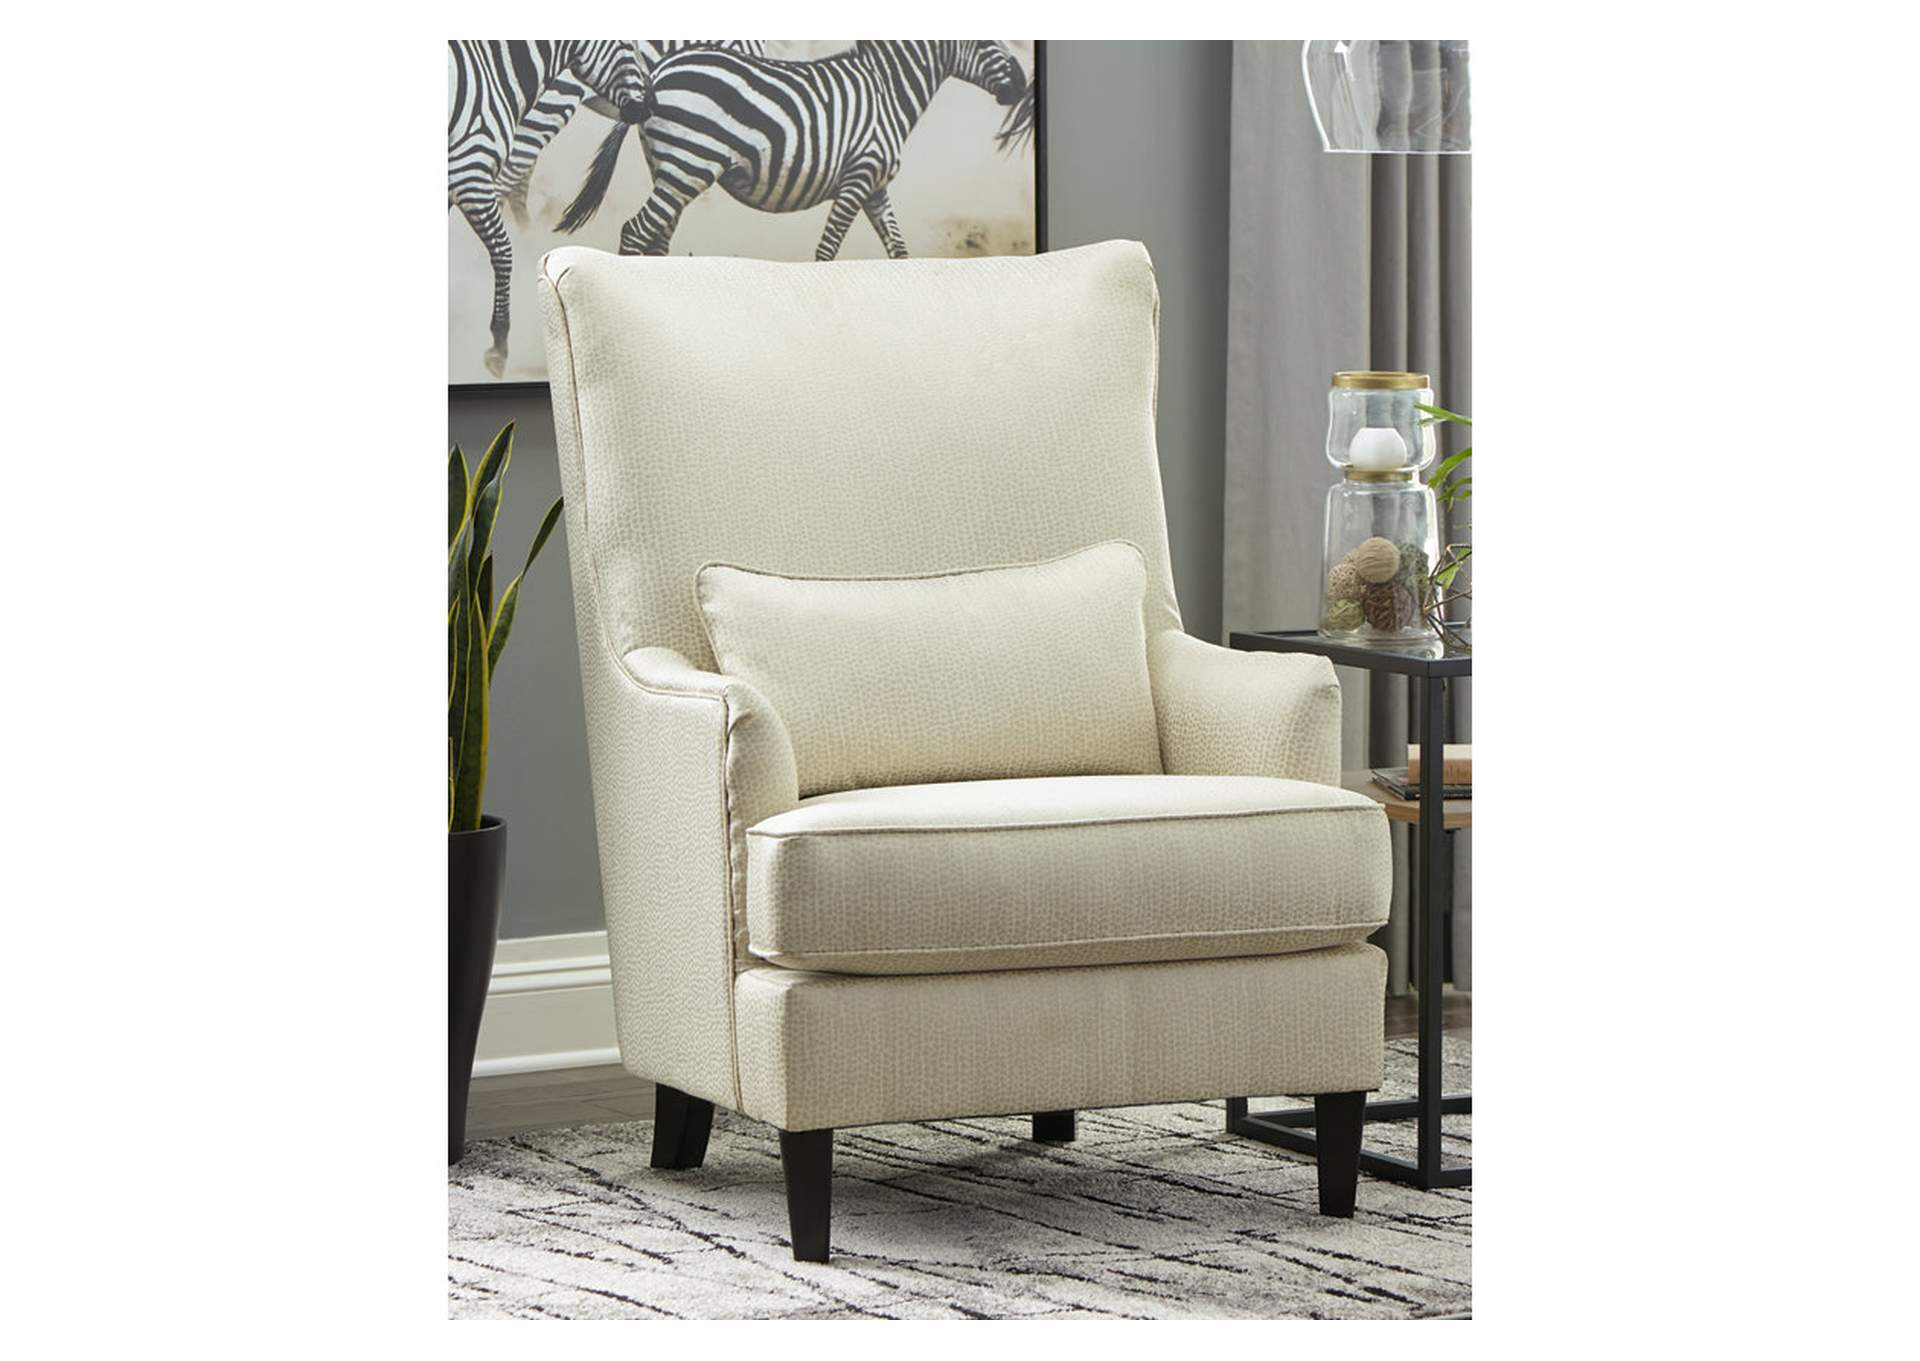 Miraculous Ivan Smith Paseo White Accent Chair Bralicious Painted Fabric Chair Ideas Braliciousco